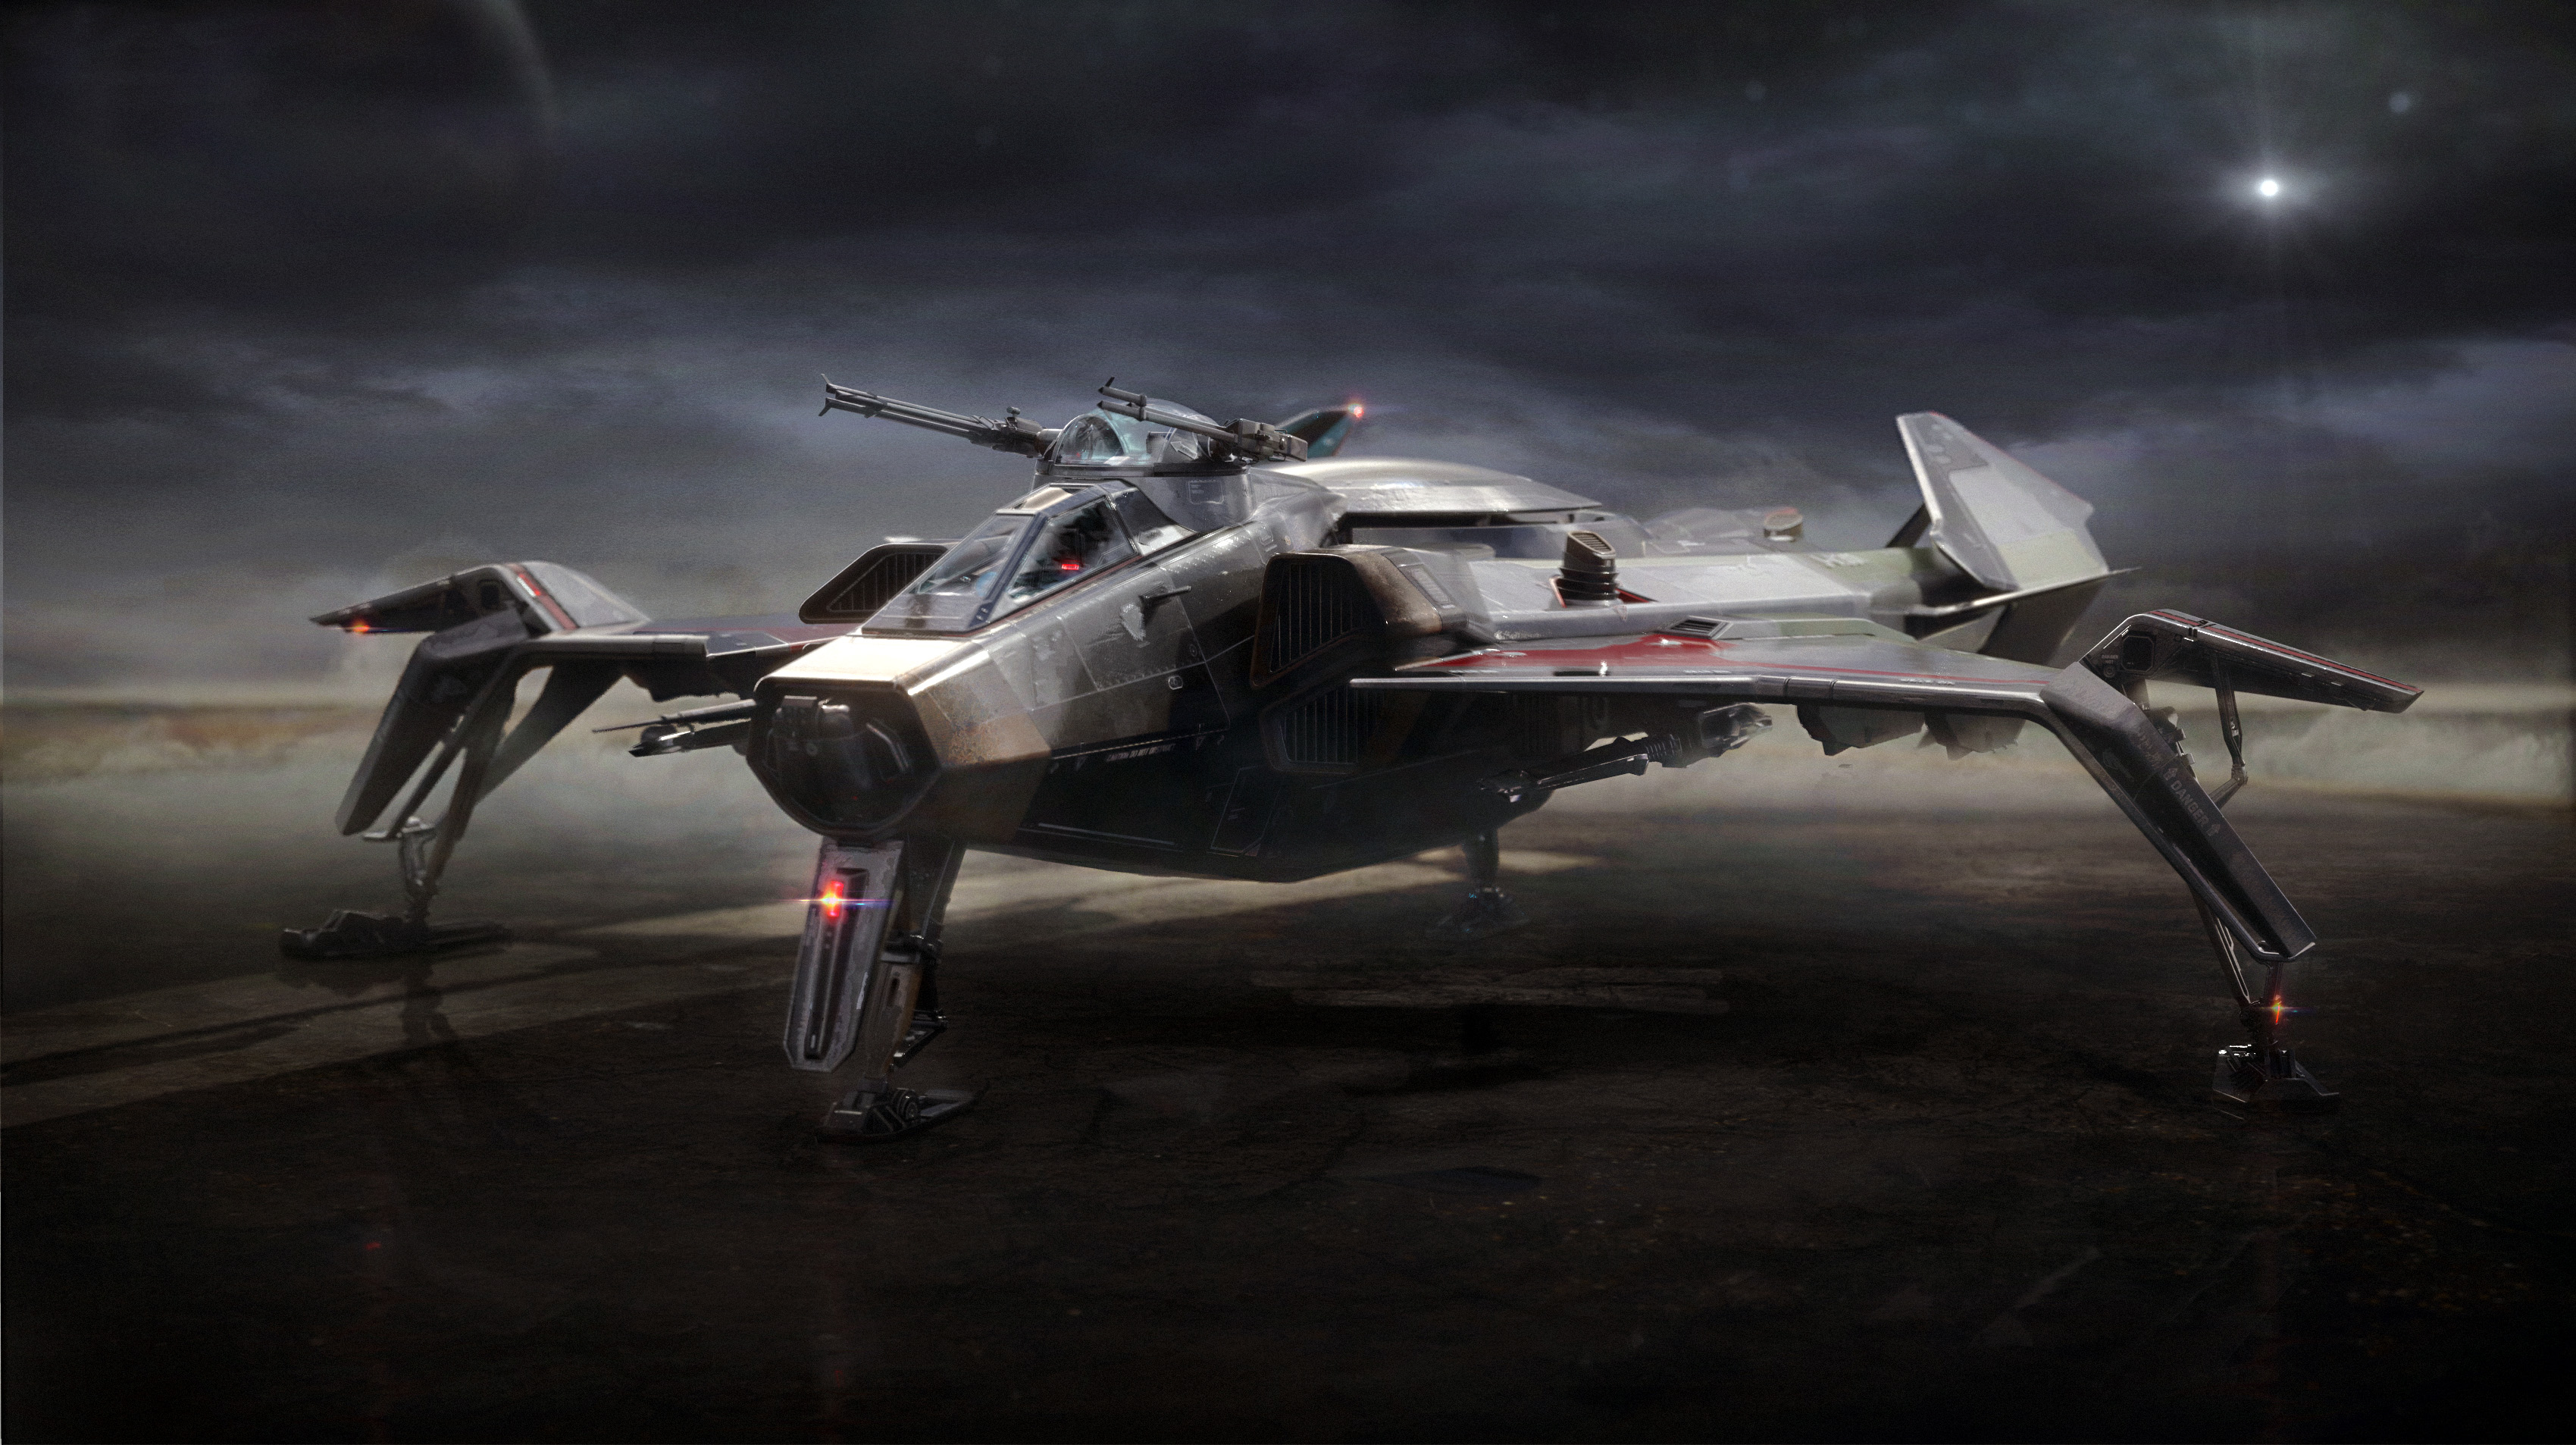 Anvil Aerospace Gladiator onGround3139 v2.jpg